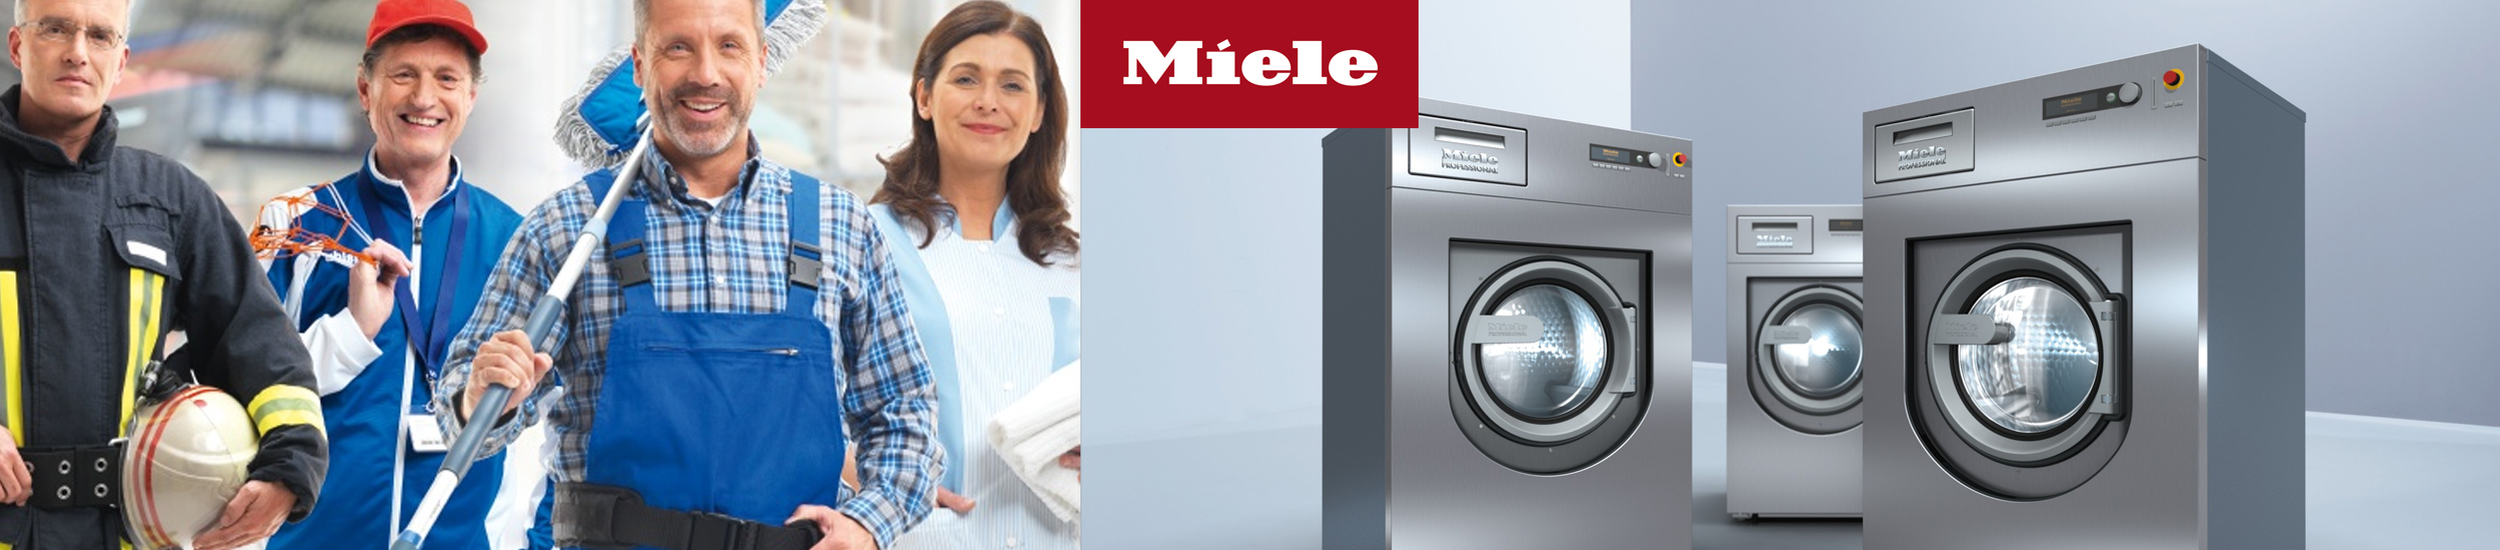 miele_benchmarkmachines 2018-11.png